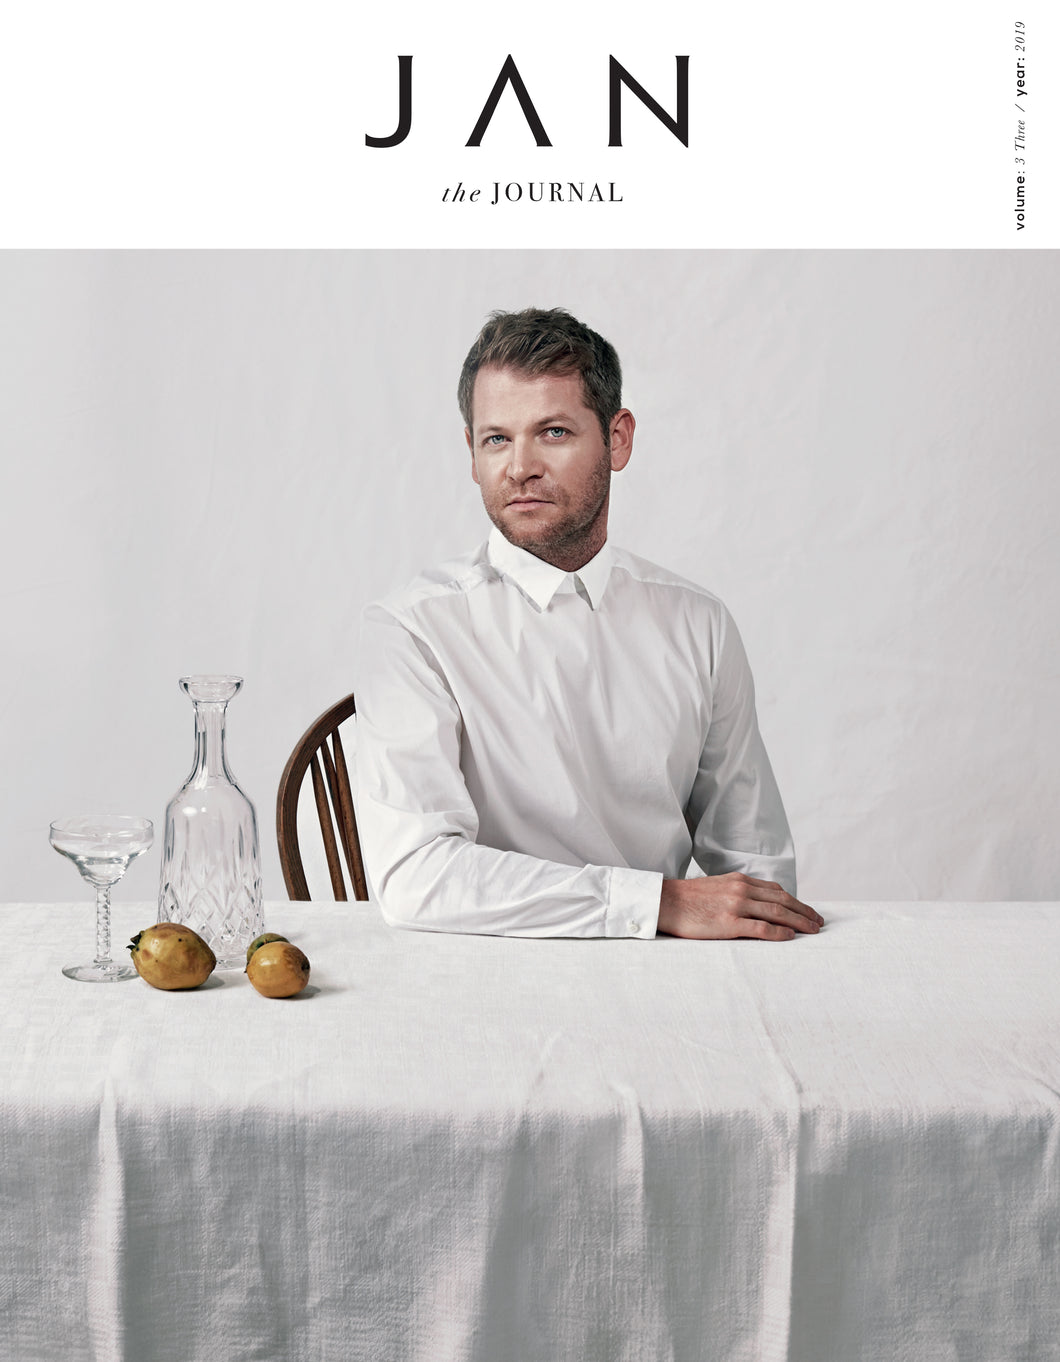 JAN the JOURNAL volume 3